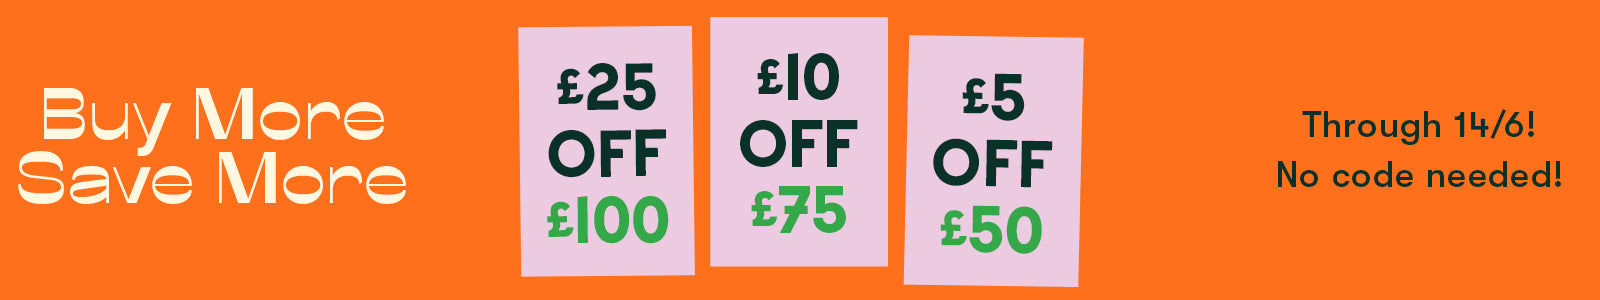 Buy more, save more (£5 off £50, £10 off £75, £25 off £100) through 14/06. No code needed!